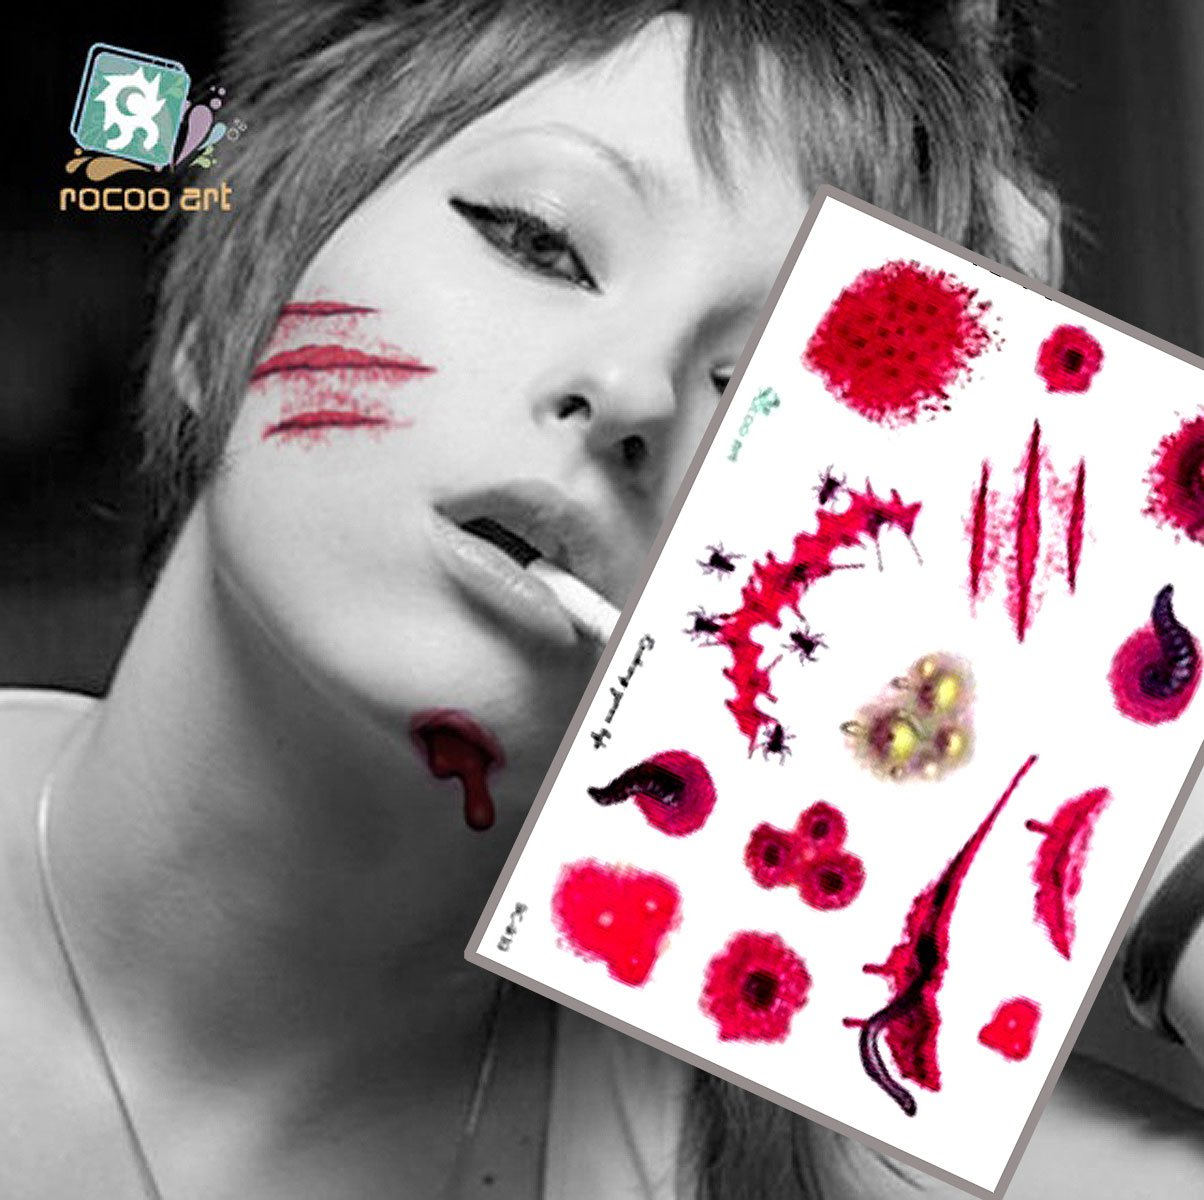 Blood Temporary Tattoo Stickers Horror Realistic Fake Wound Scab Scar for Cos Play Party Halloween,8pcs 8 patterns